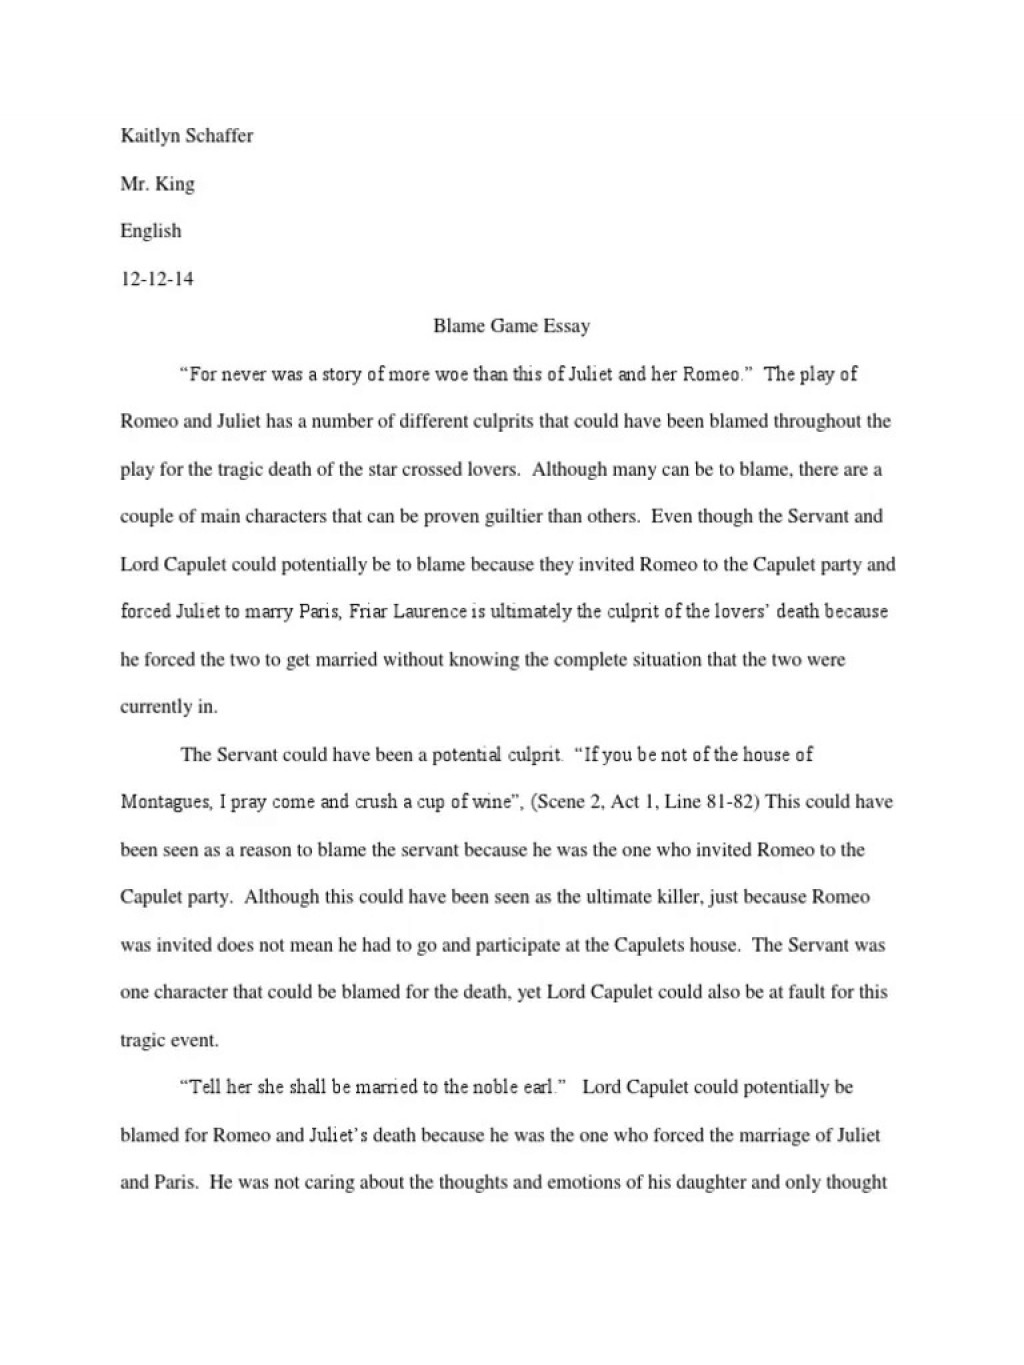 006 Sensational Romeo And Juliet Essay Sample  Who I Responsible For Juliet' Death Introduction Hook Question PdfLarge